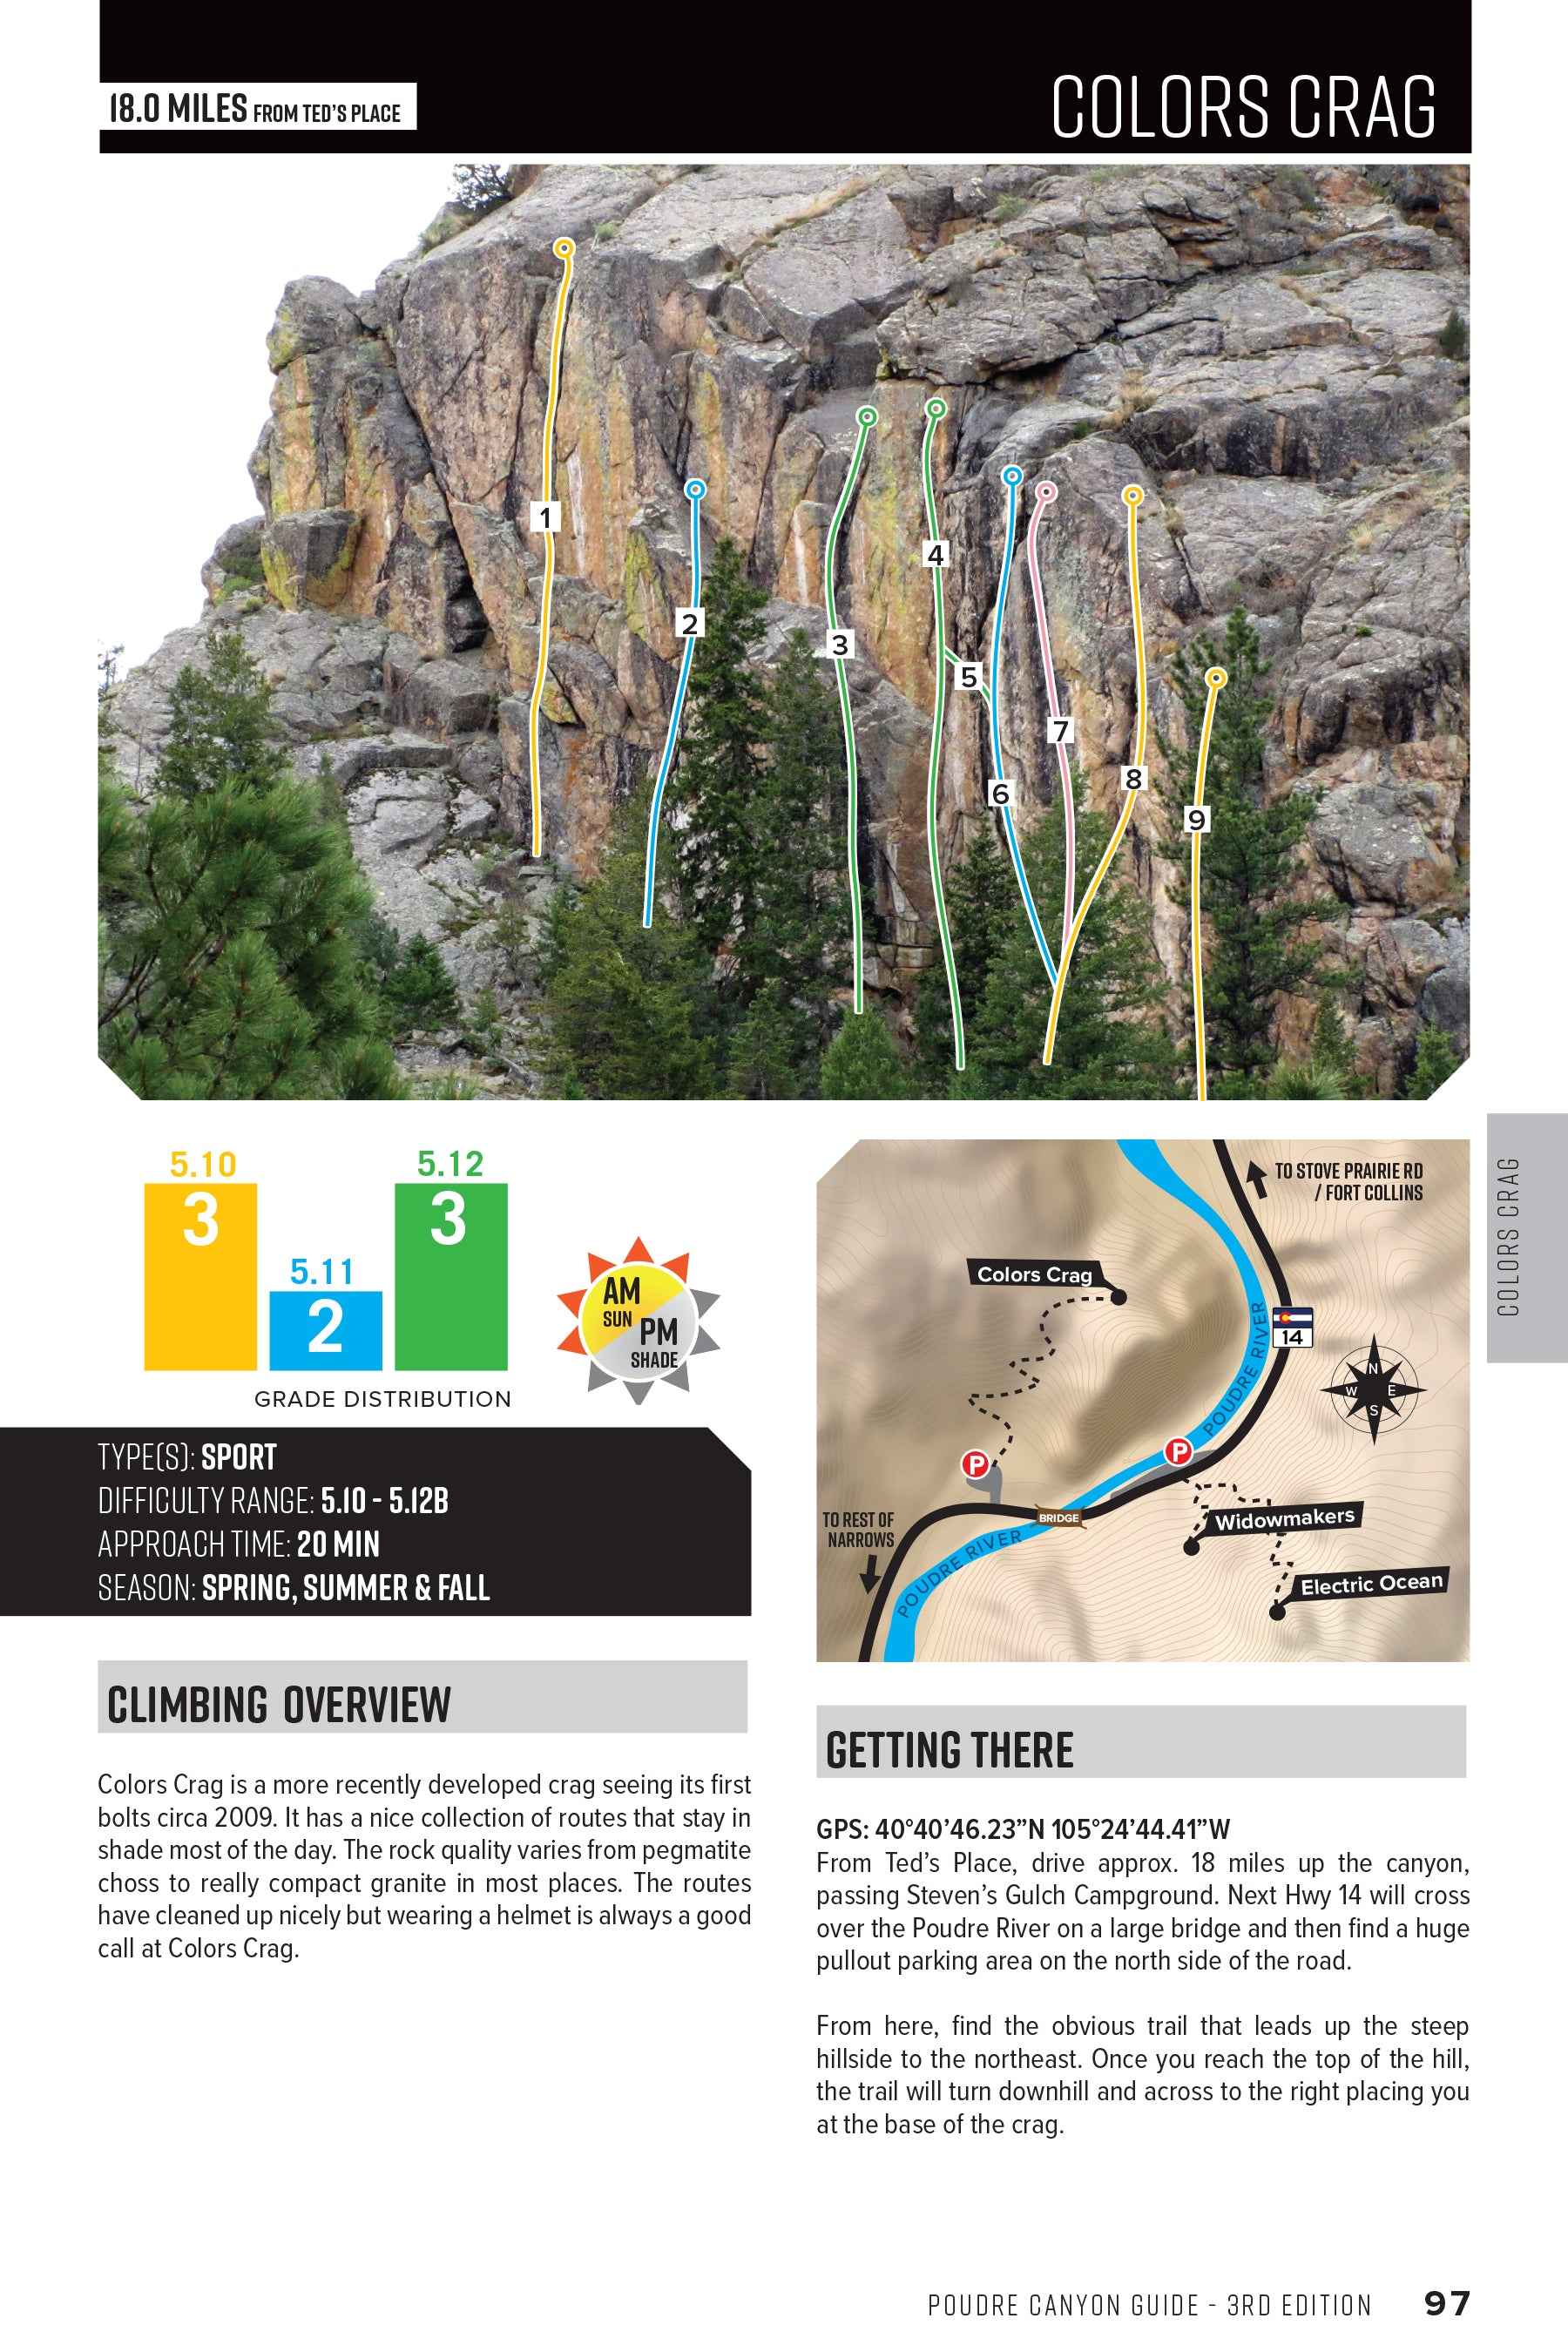 Poudre Canyon (Fort Collins) Climbing Guide 3rd Edition